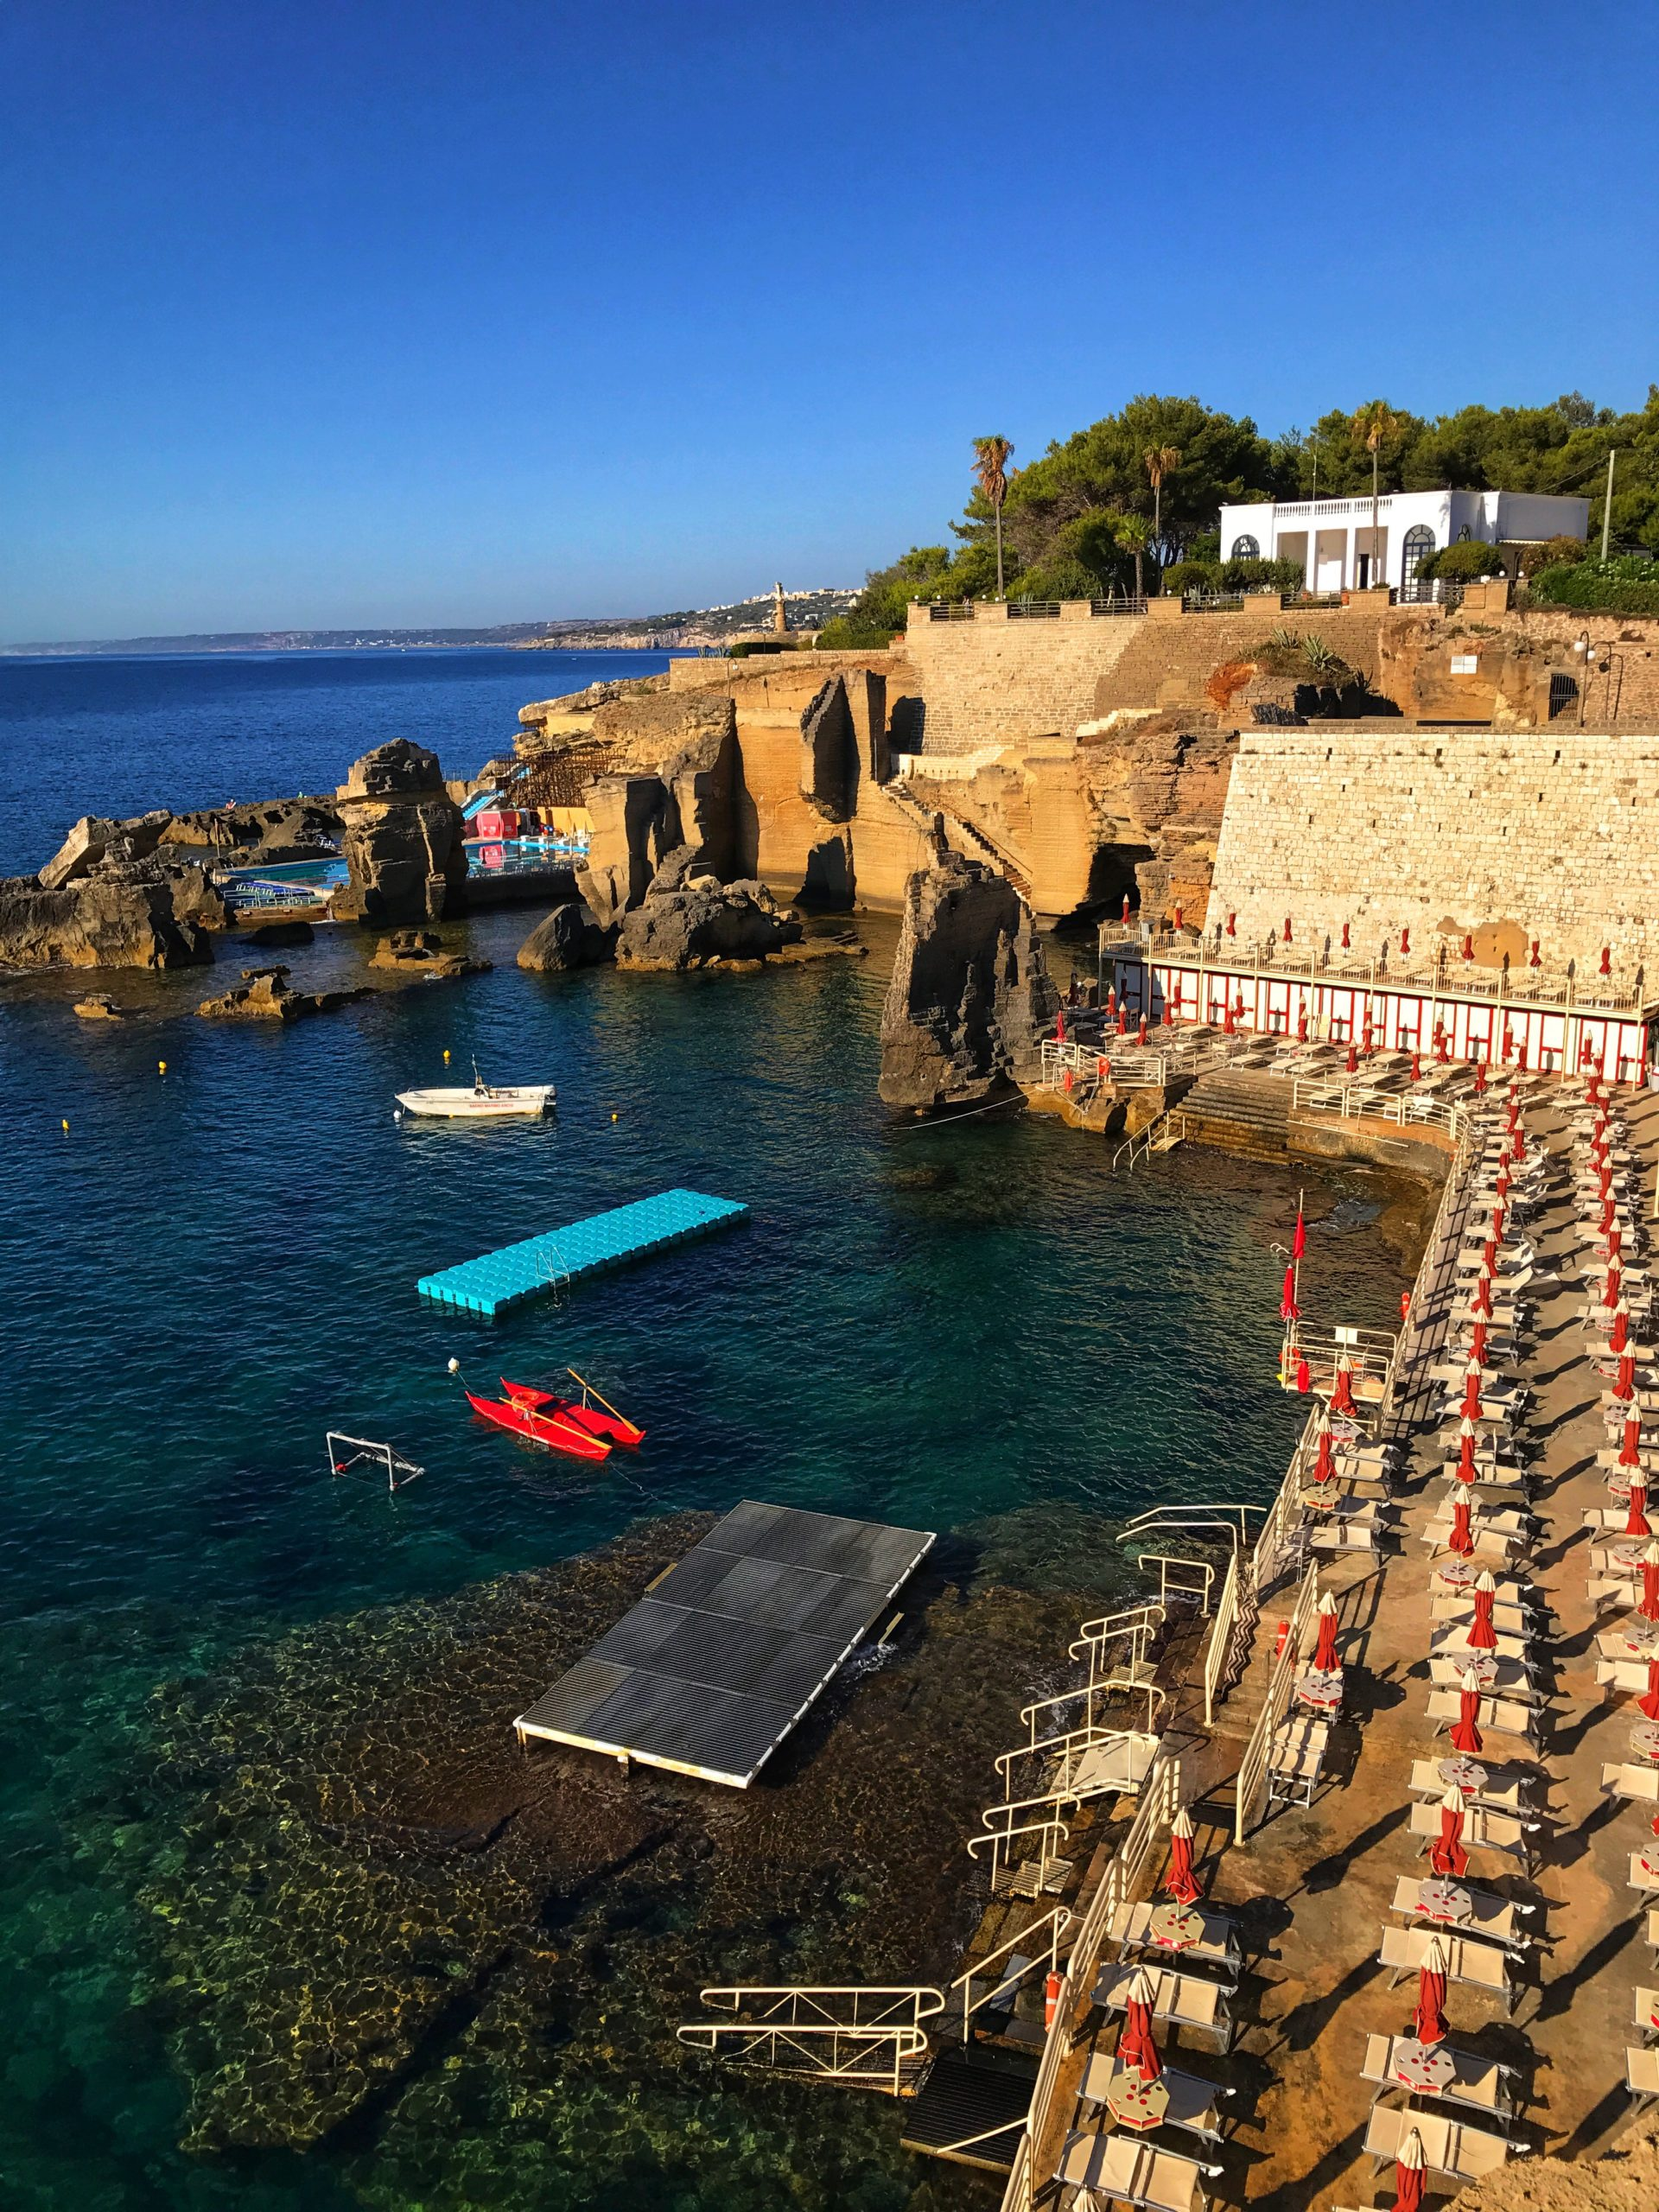 Santa Cesarea Terme in Salento, Puglia is visually stunning like Polignano a Mare, but less well known and less visited.